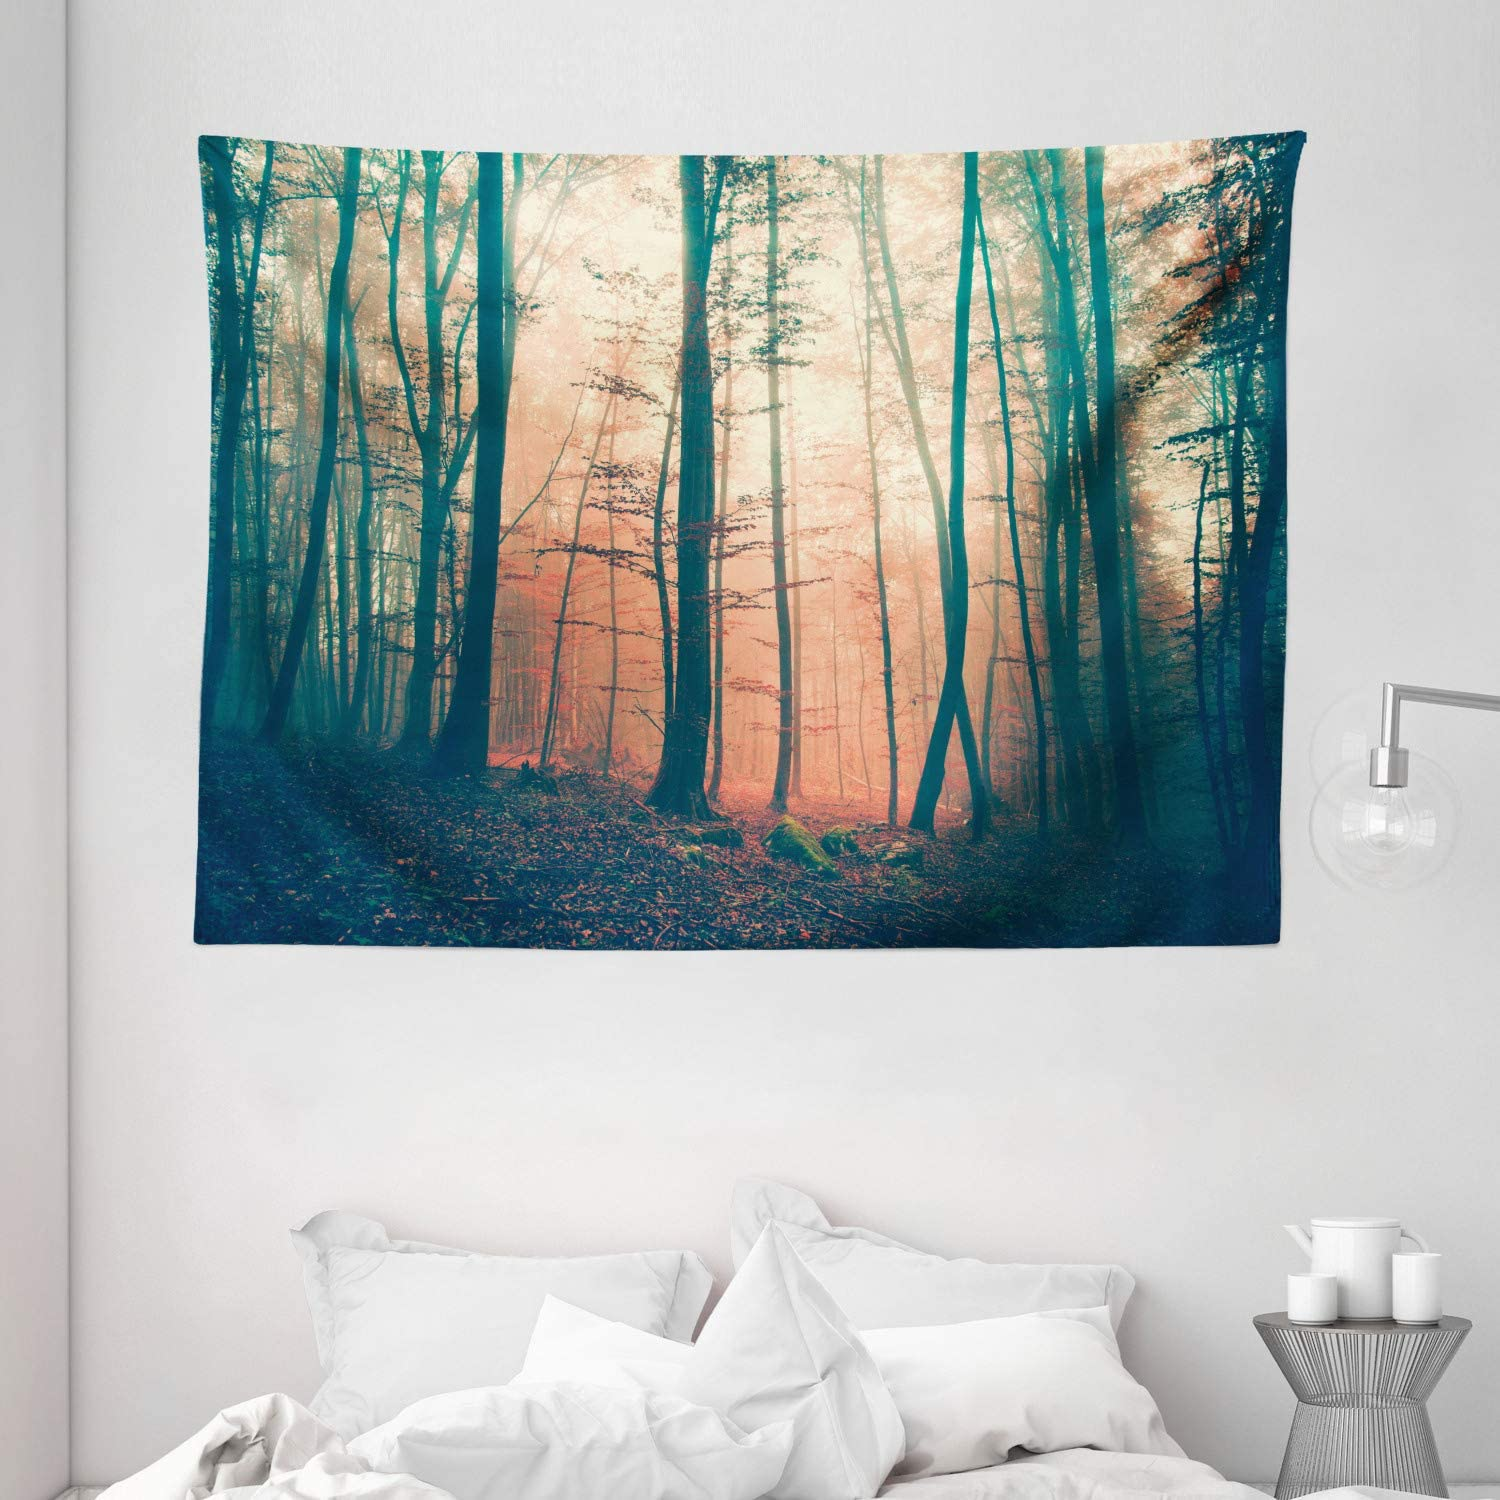 "Ambesonne Mystic Tapestry, Pale and Vintage Color in Mysterious Autumn Forest Woodland Nature Picture, Wide Wall Hanging for Bedroom Living Room Dorm, 80"" X 60"", Coral Green"